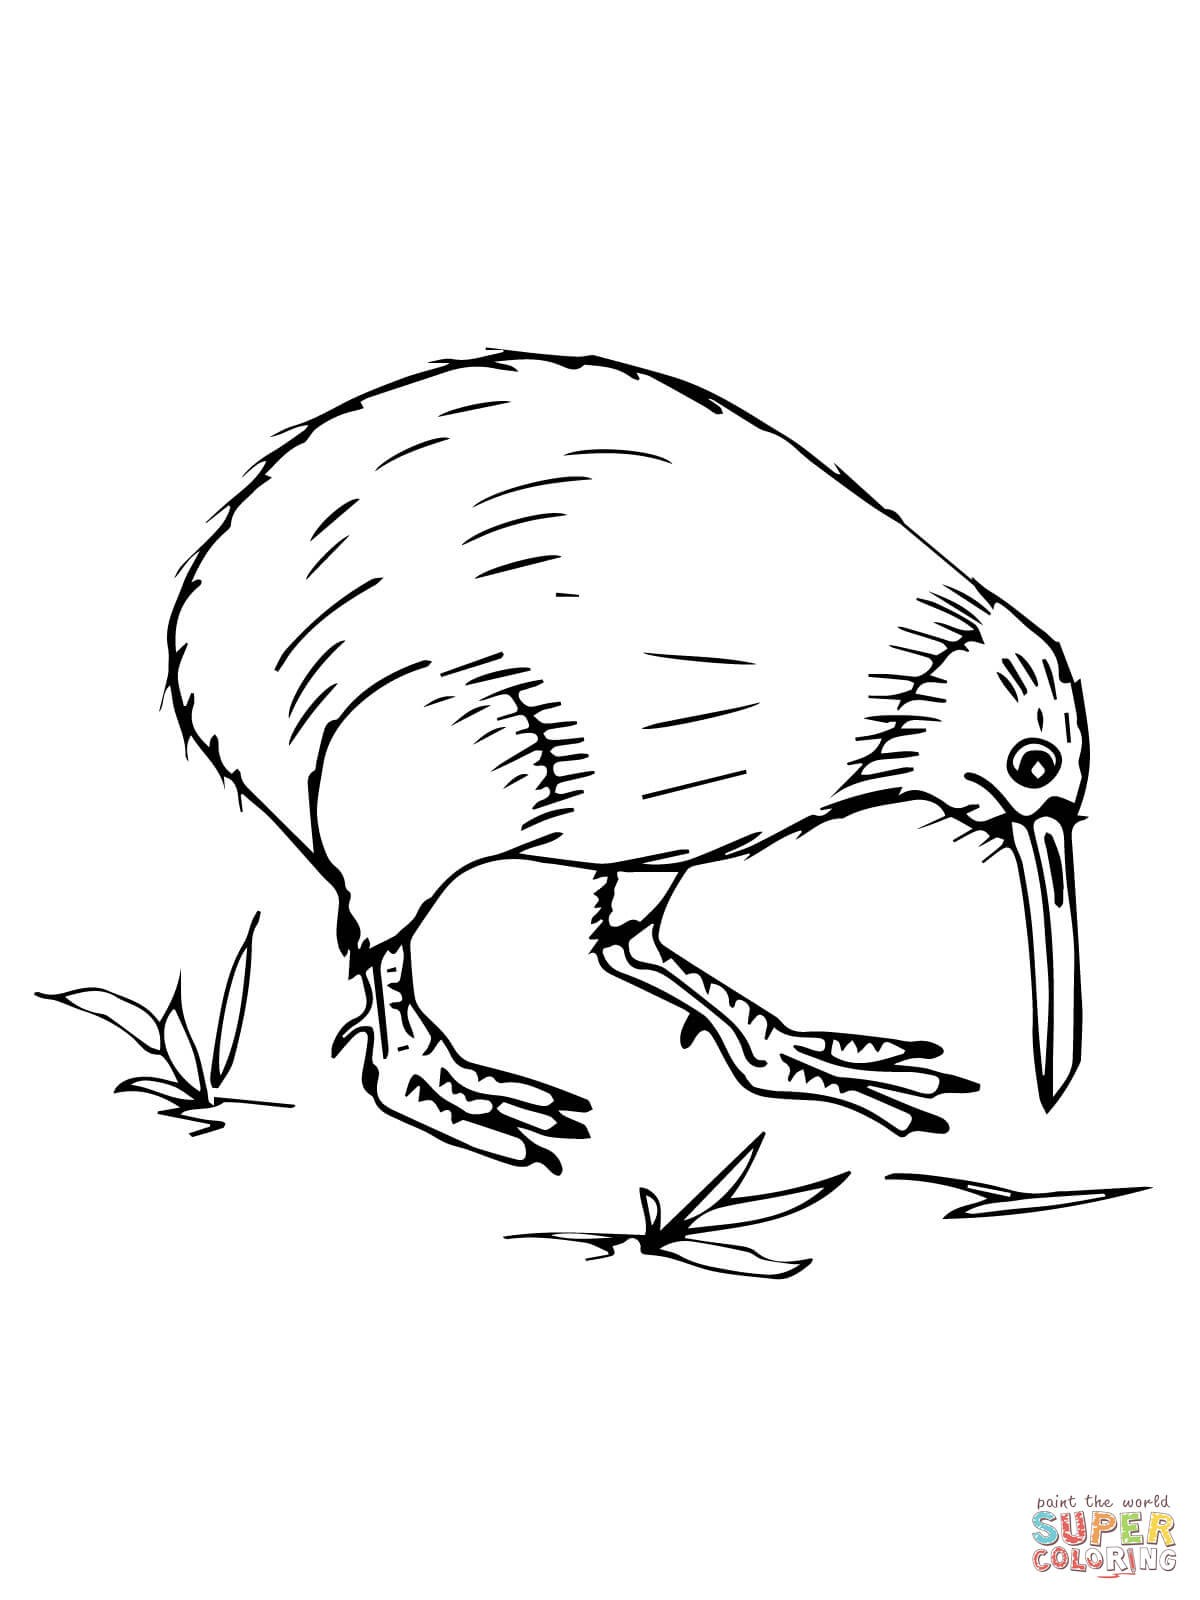 Kiwi bird drawing at free for personal for Kiwi bird coloring page